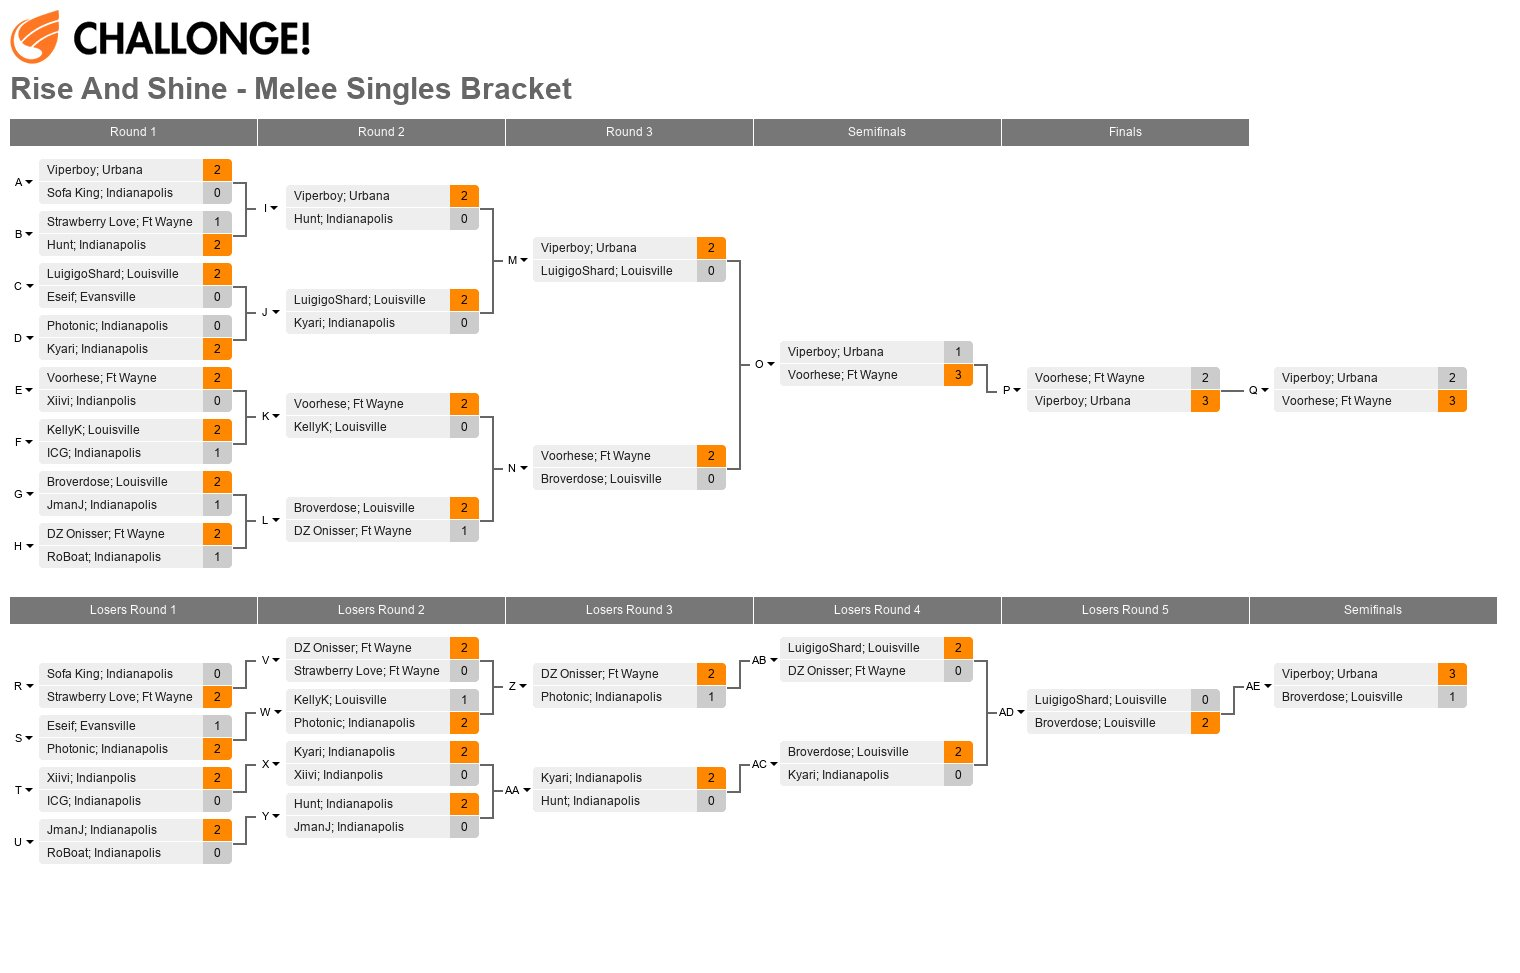 Early Bird Special II: Rise And Shine - Melee Singles Bracket